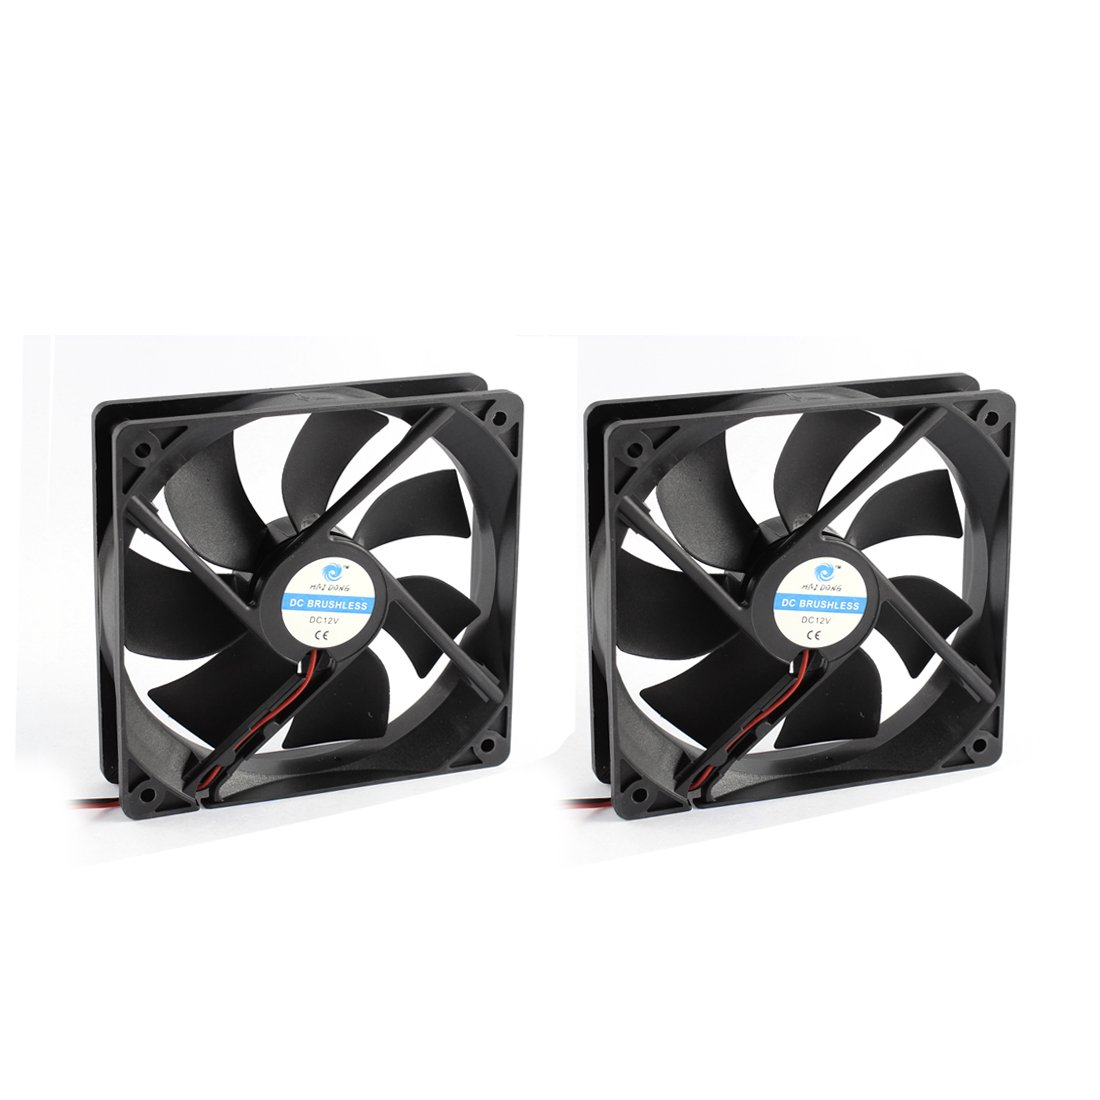 Uxcell 2pcs 12V 2-Wired Black Plastic 7 Fans DC Brushless Axial Cooling Fan Heat Sink Cooler, 12 x 2.5 cm